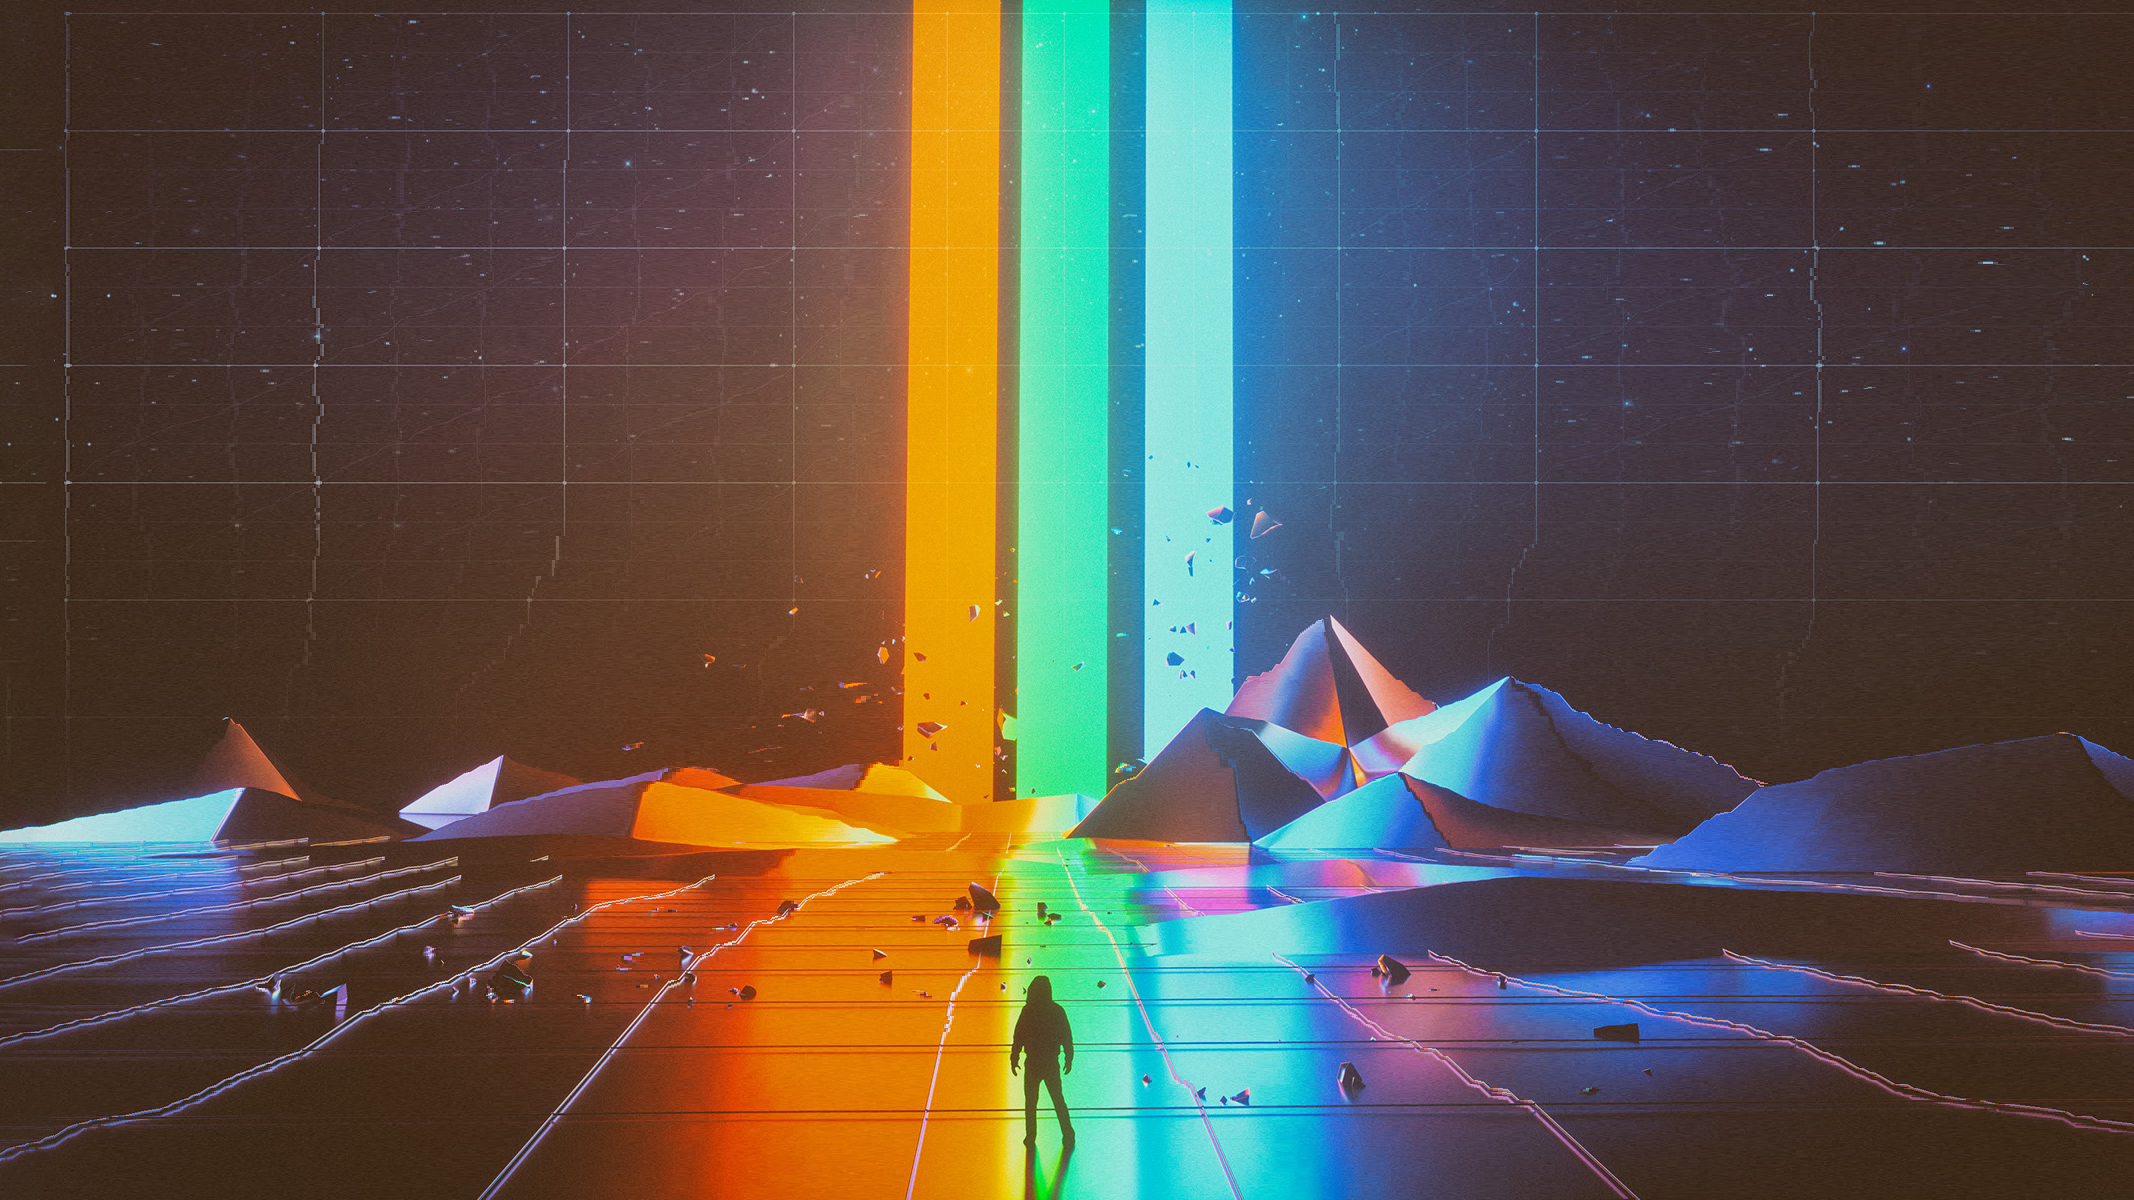 Rgb Wallpaper Dump I Made All These Will Minimal Photoshop - Believer Imagine Dragons Album , HD Wallpaper & Backgrounds